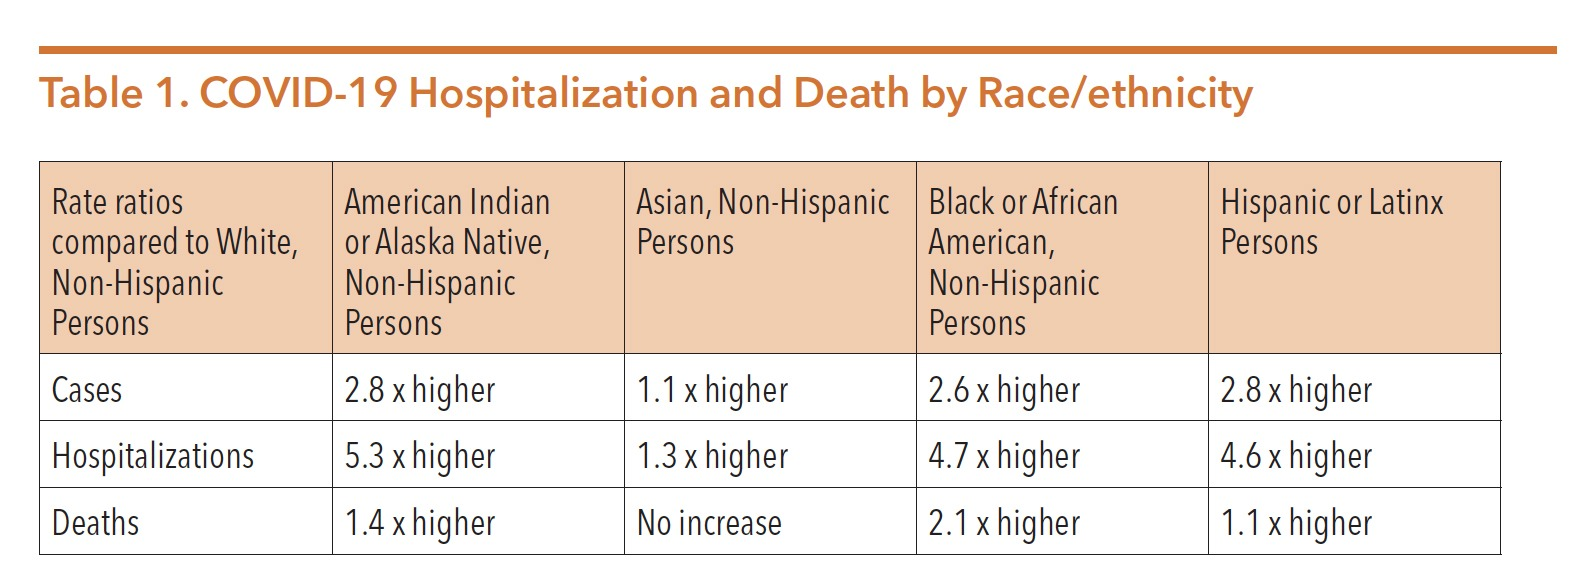 Table of Covid-19 Hospitalization and Death by Race/Ethnicity